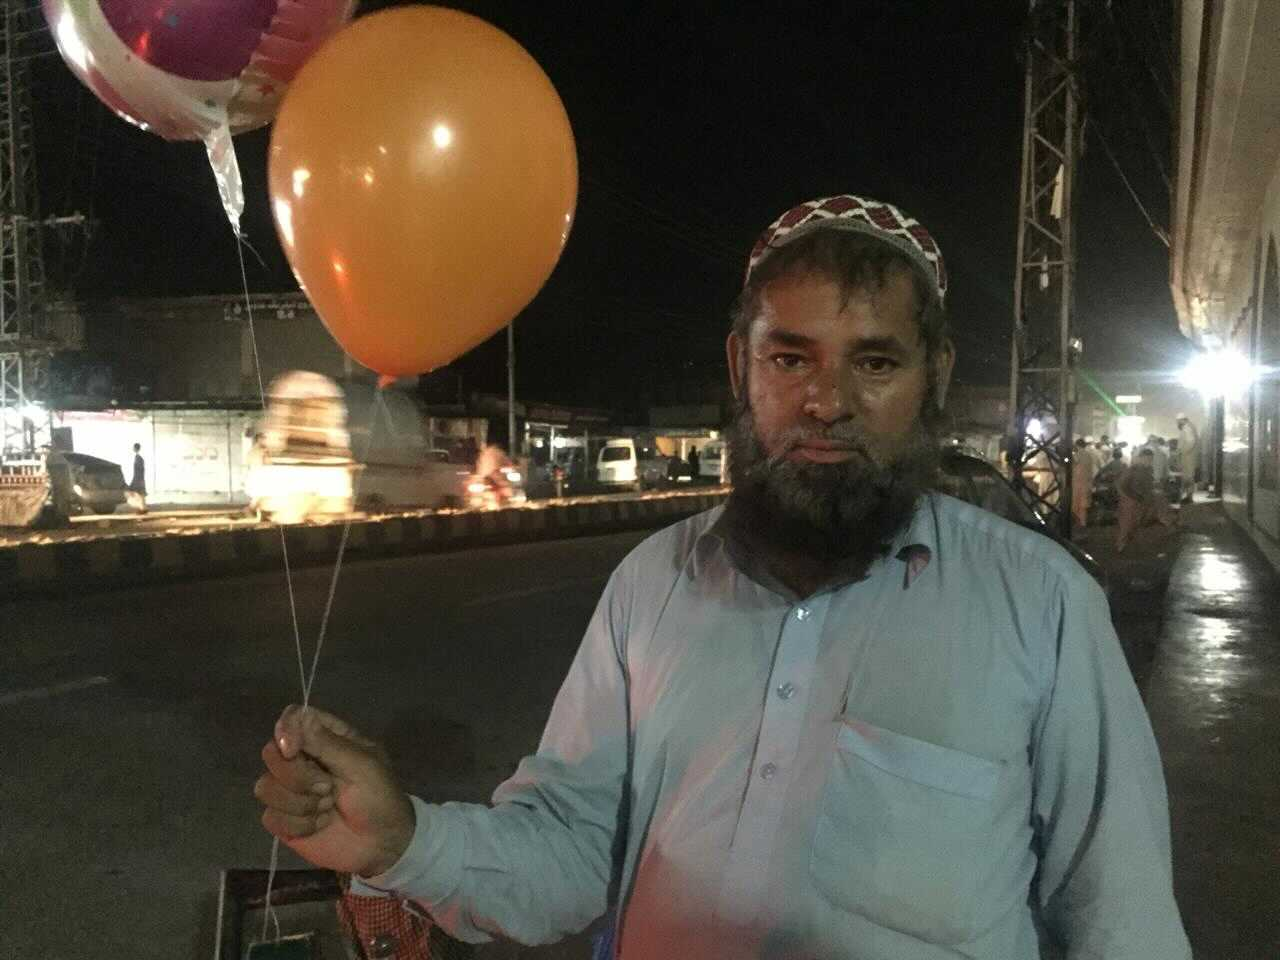 ballooning crisis living in inescapable penury